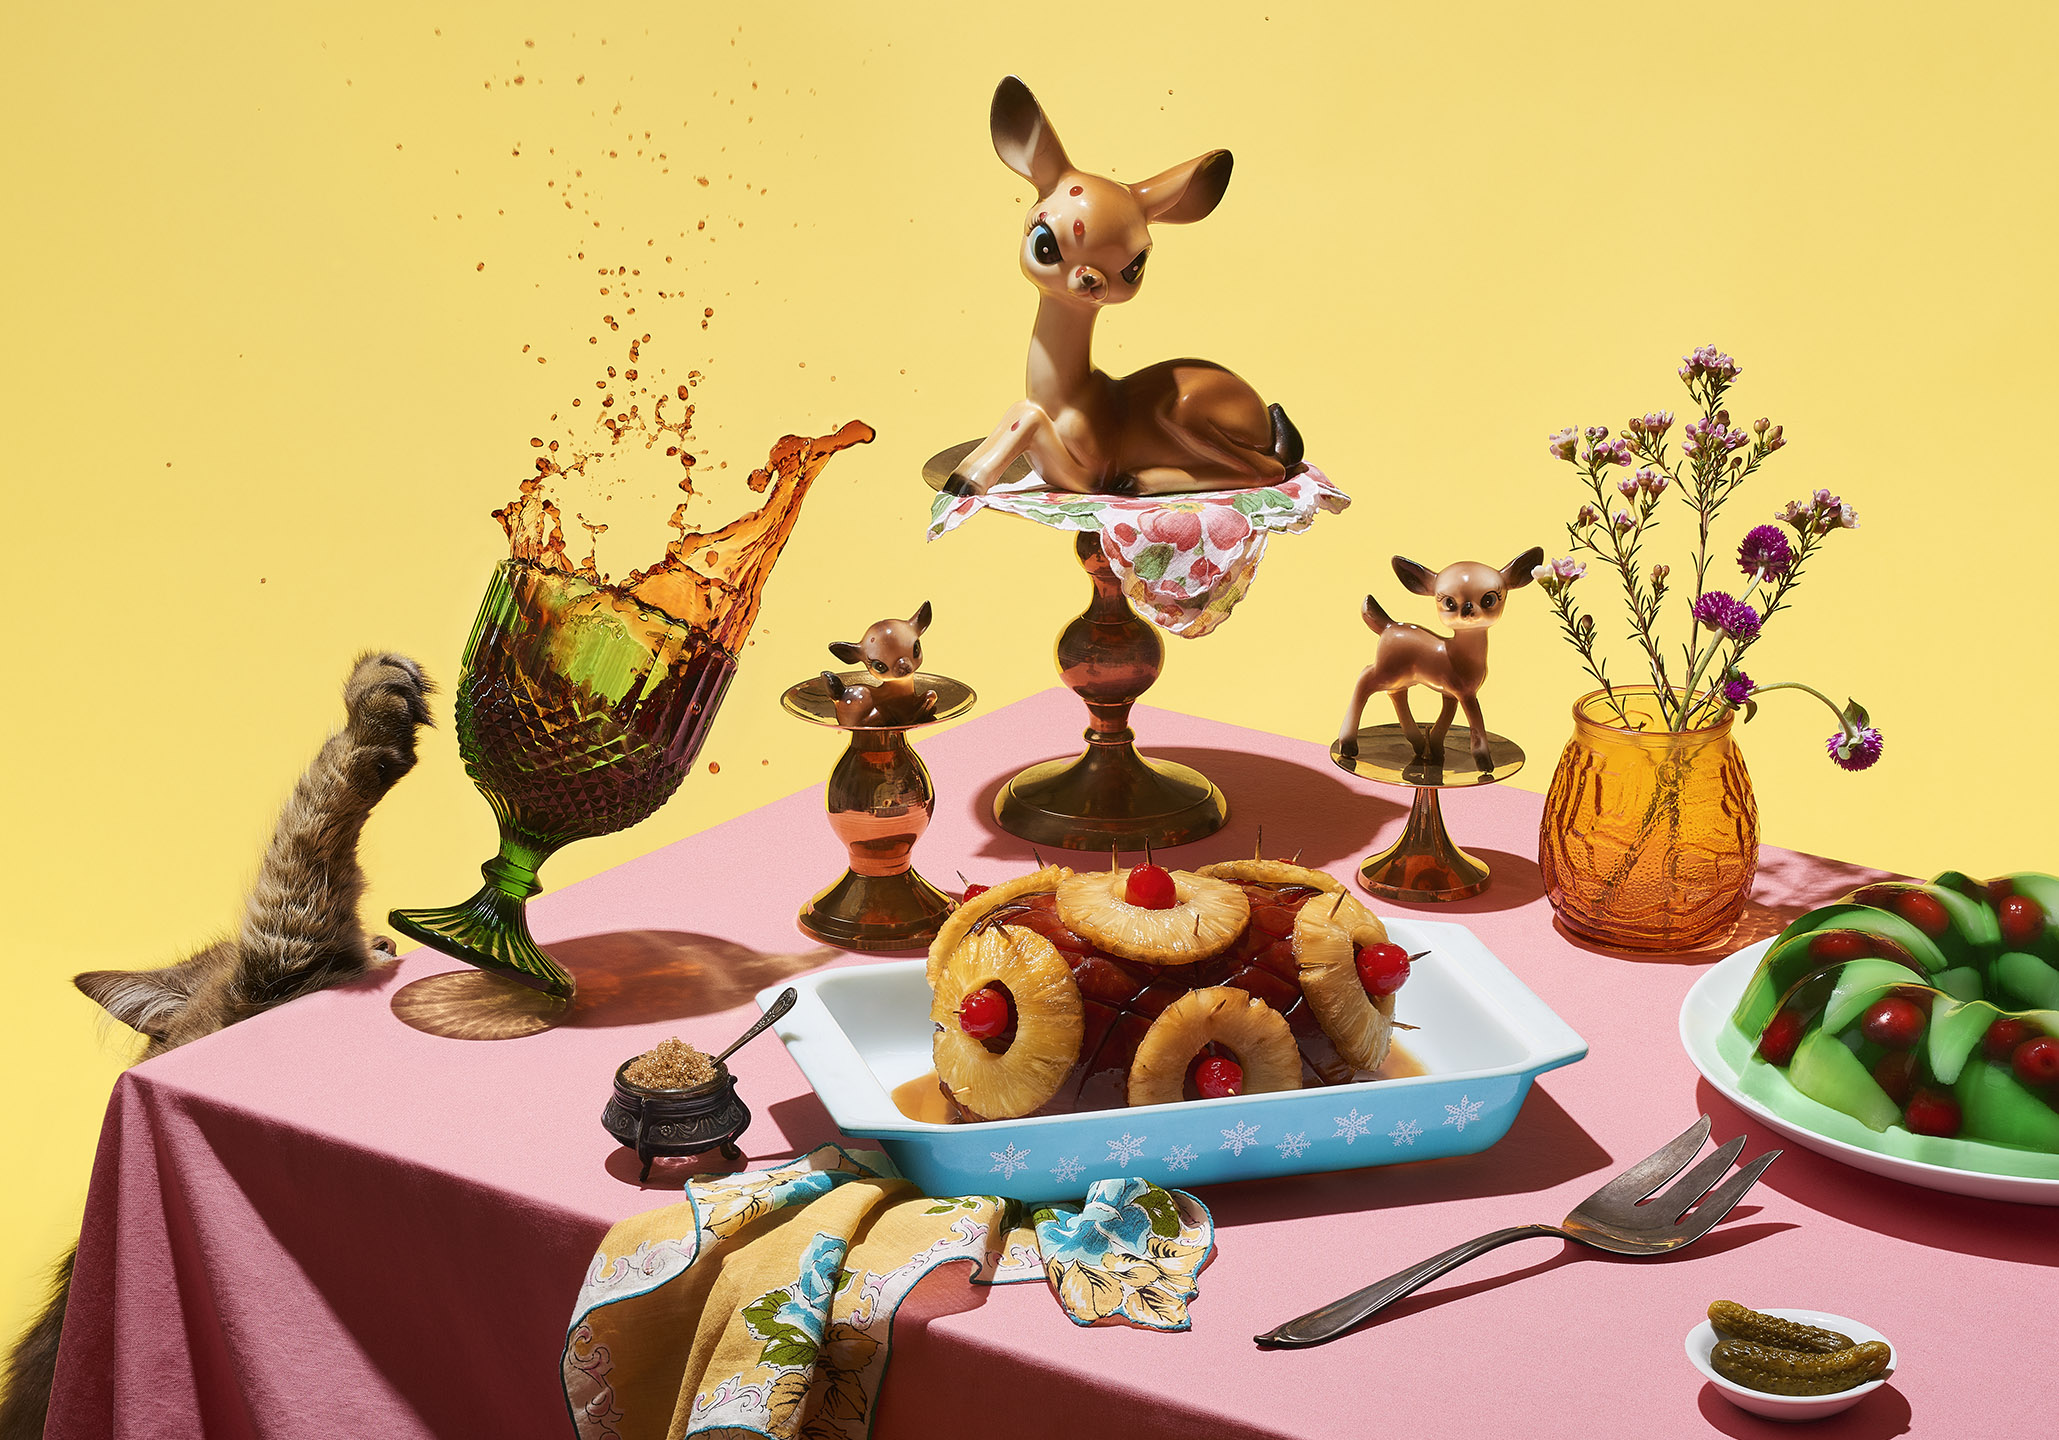 Deer Grandmas Dinner Party StillLife PDN Award winner  styled by Jessica Stewart Prop Stylist Specializing in conceptual Imagery and Styling